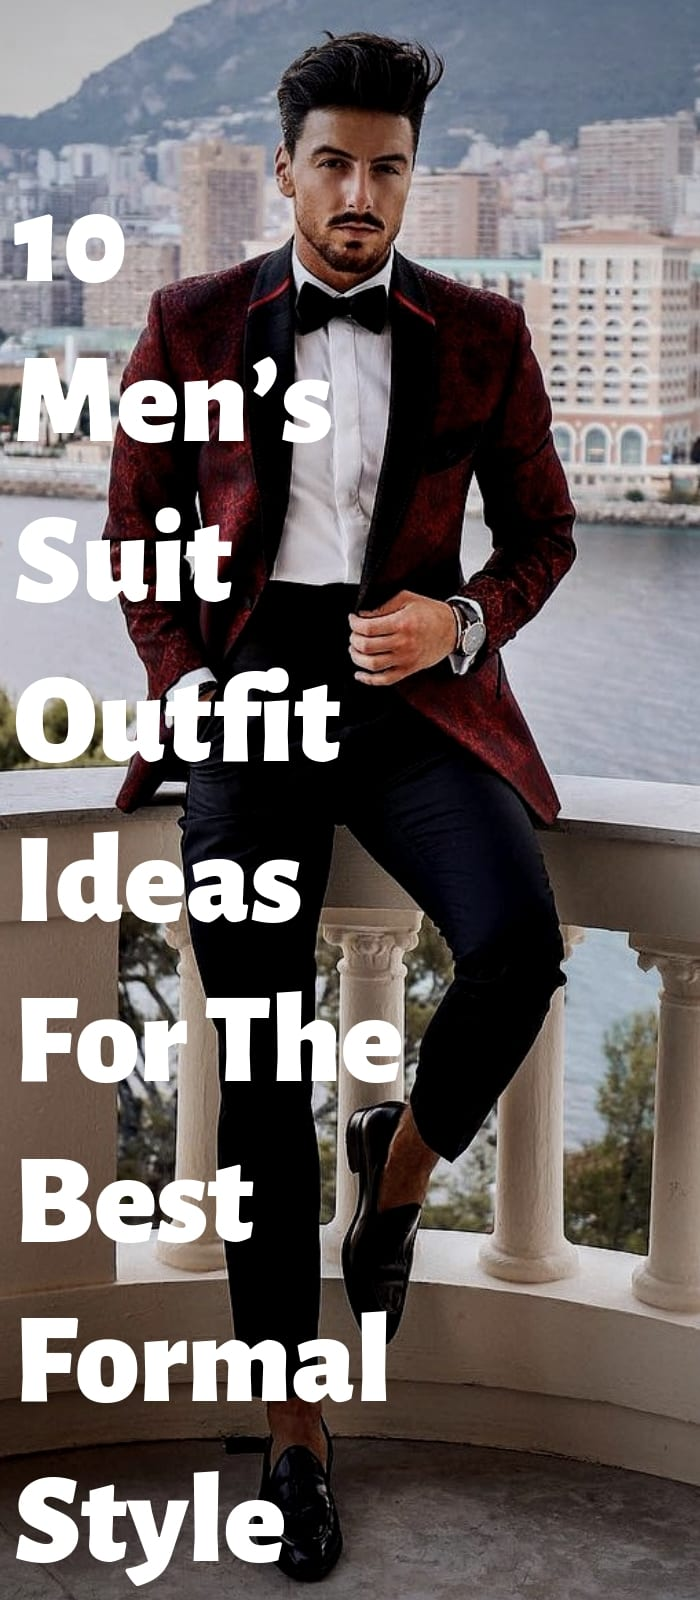 10-Mens-Suit-Outfit-Ideas-For-The-Formal-Style